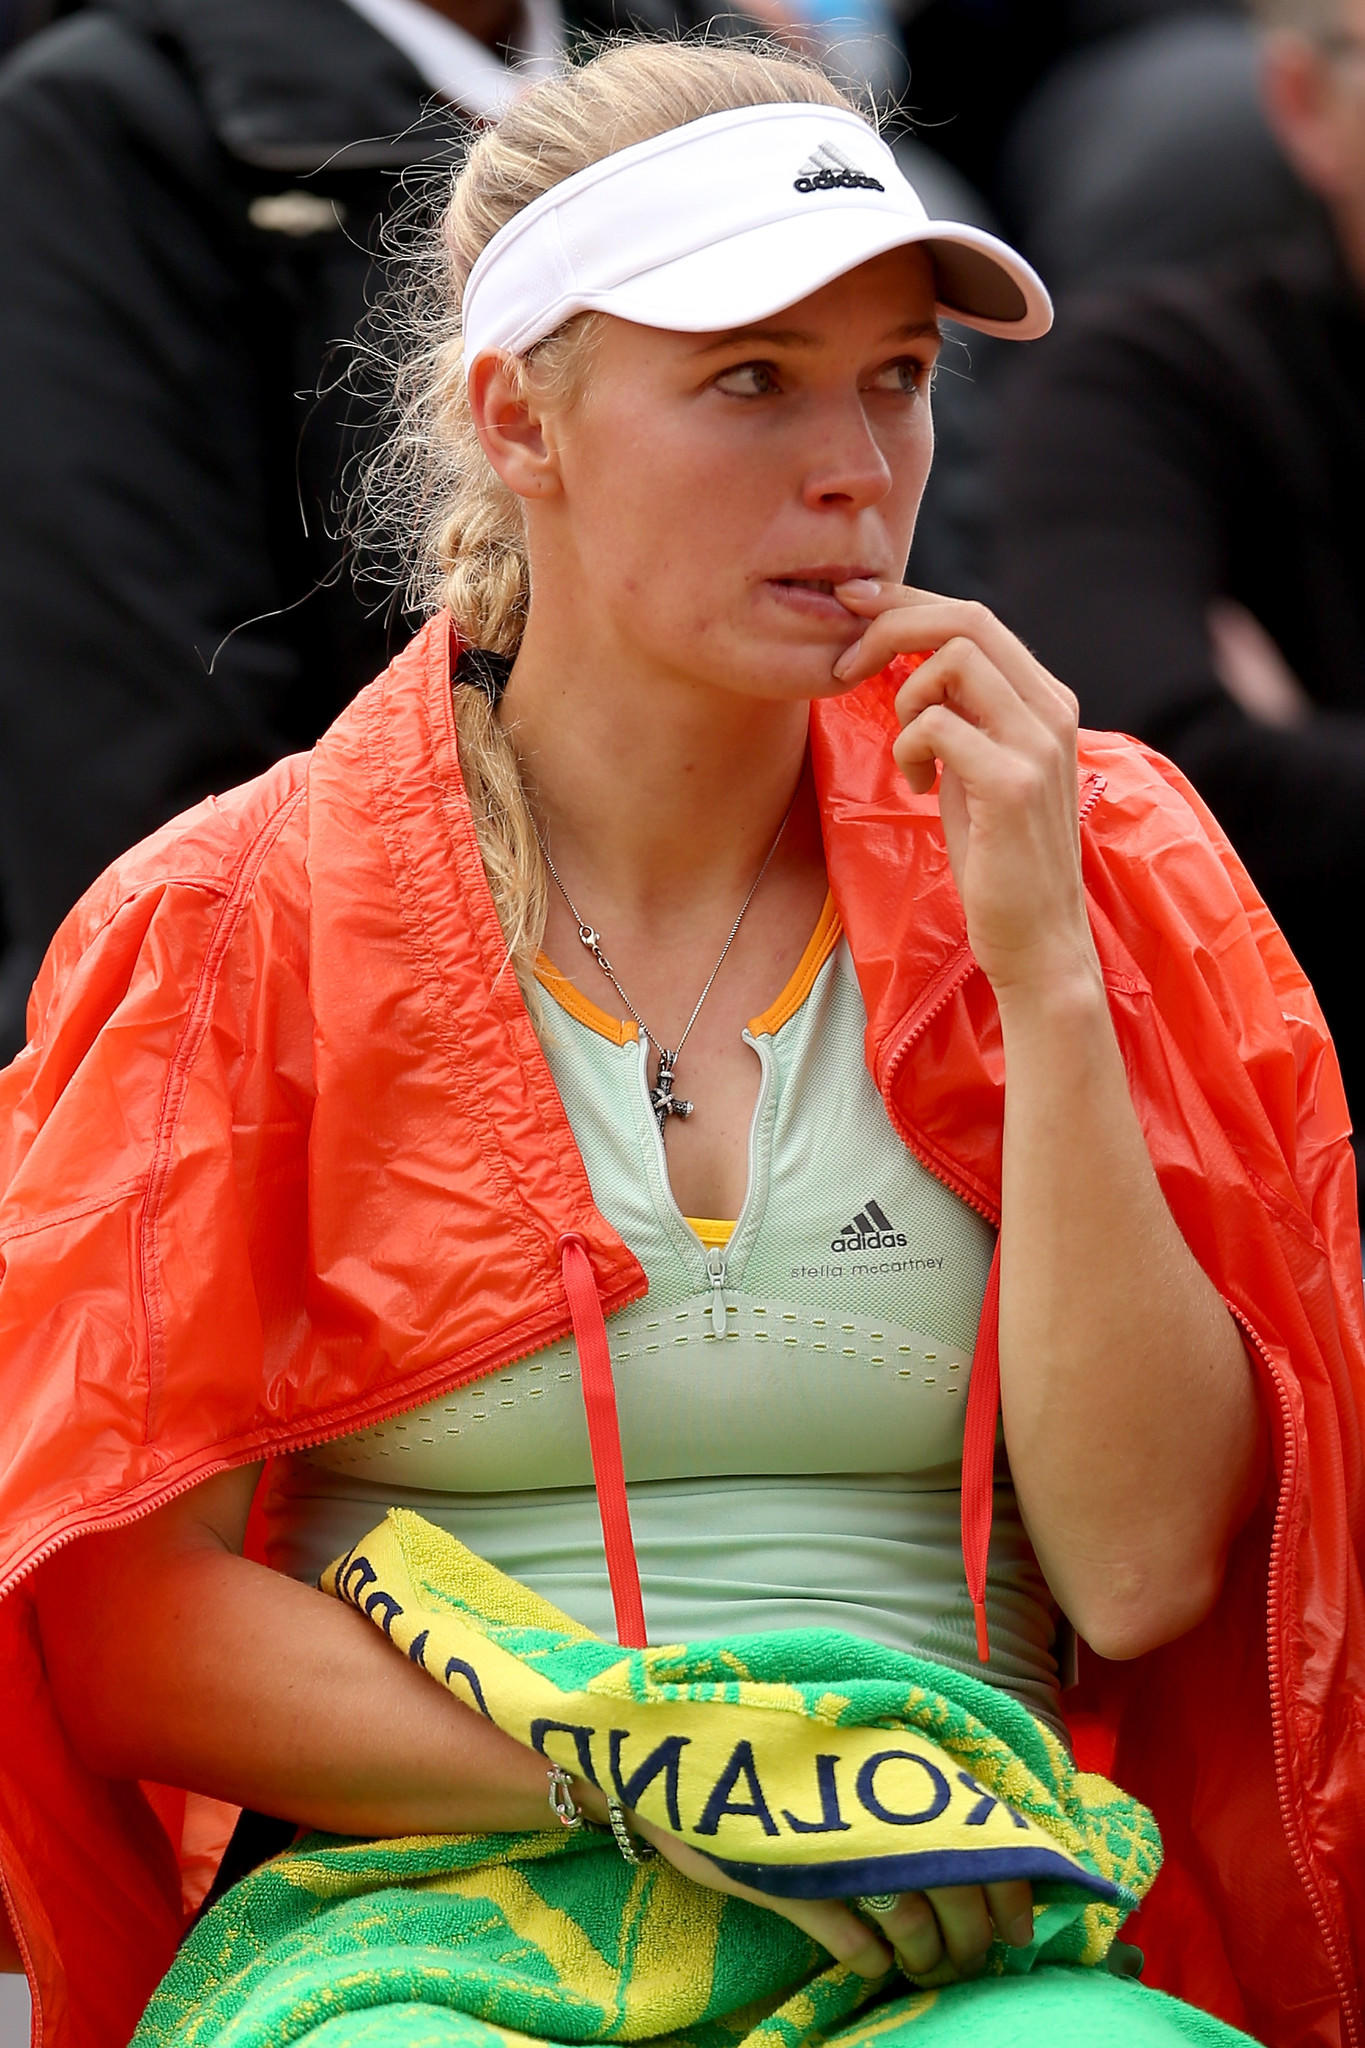 PARIS, FRANCE - MAY 27: Caroline Wozniacki of Denmark reacts during a break in her women's singles match against Yanina Wickmayer of Belgium on day three of the French Open at Roland Garros on May 27, 2014 in Paris, France. (Photo by Matthew Stockman/Getty Images) ORG XMIT: 492605691